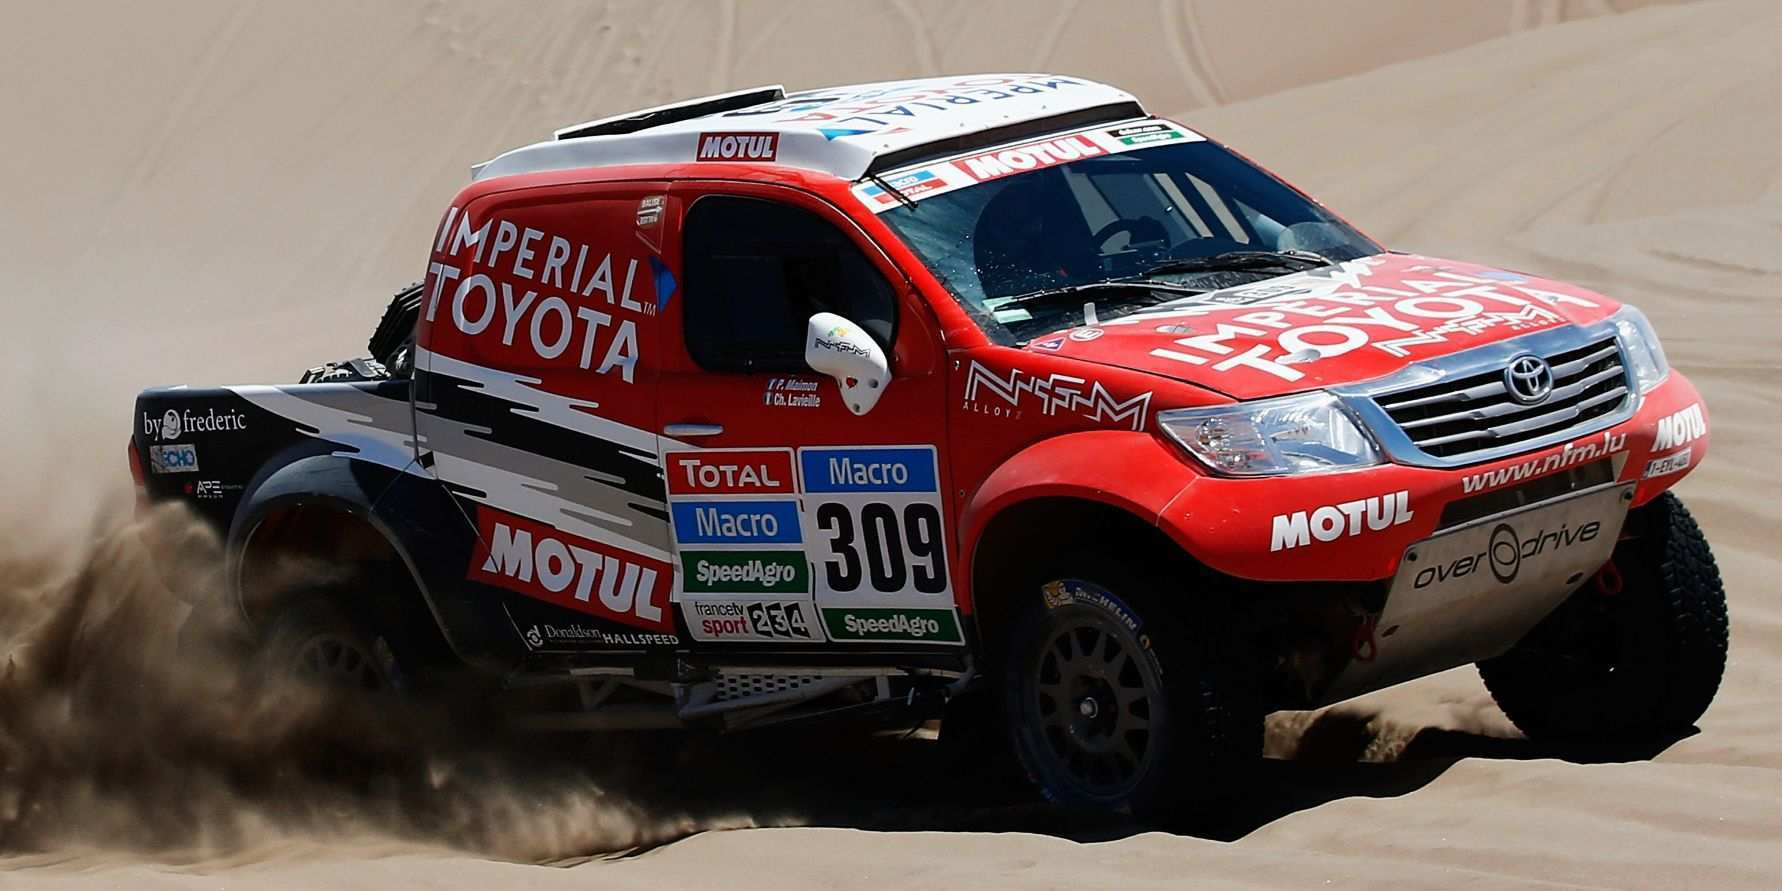 75 Gallery of Toyota Dakar 2020 Rumors for Toyota Dakar 2020